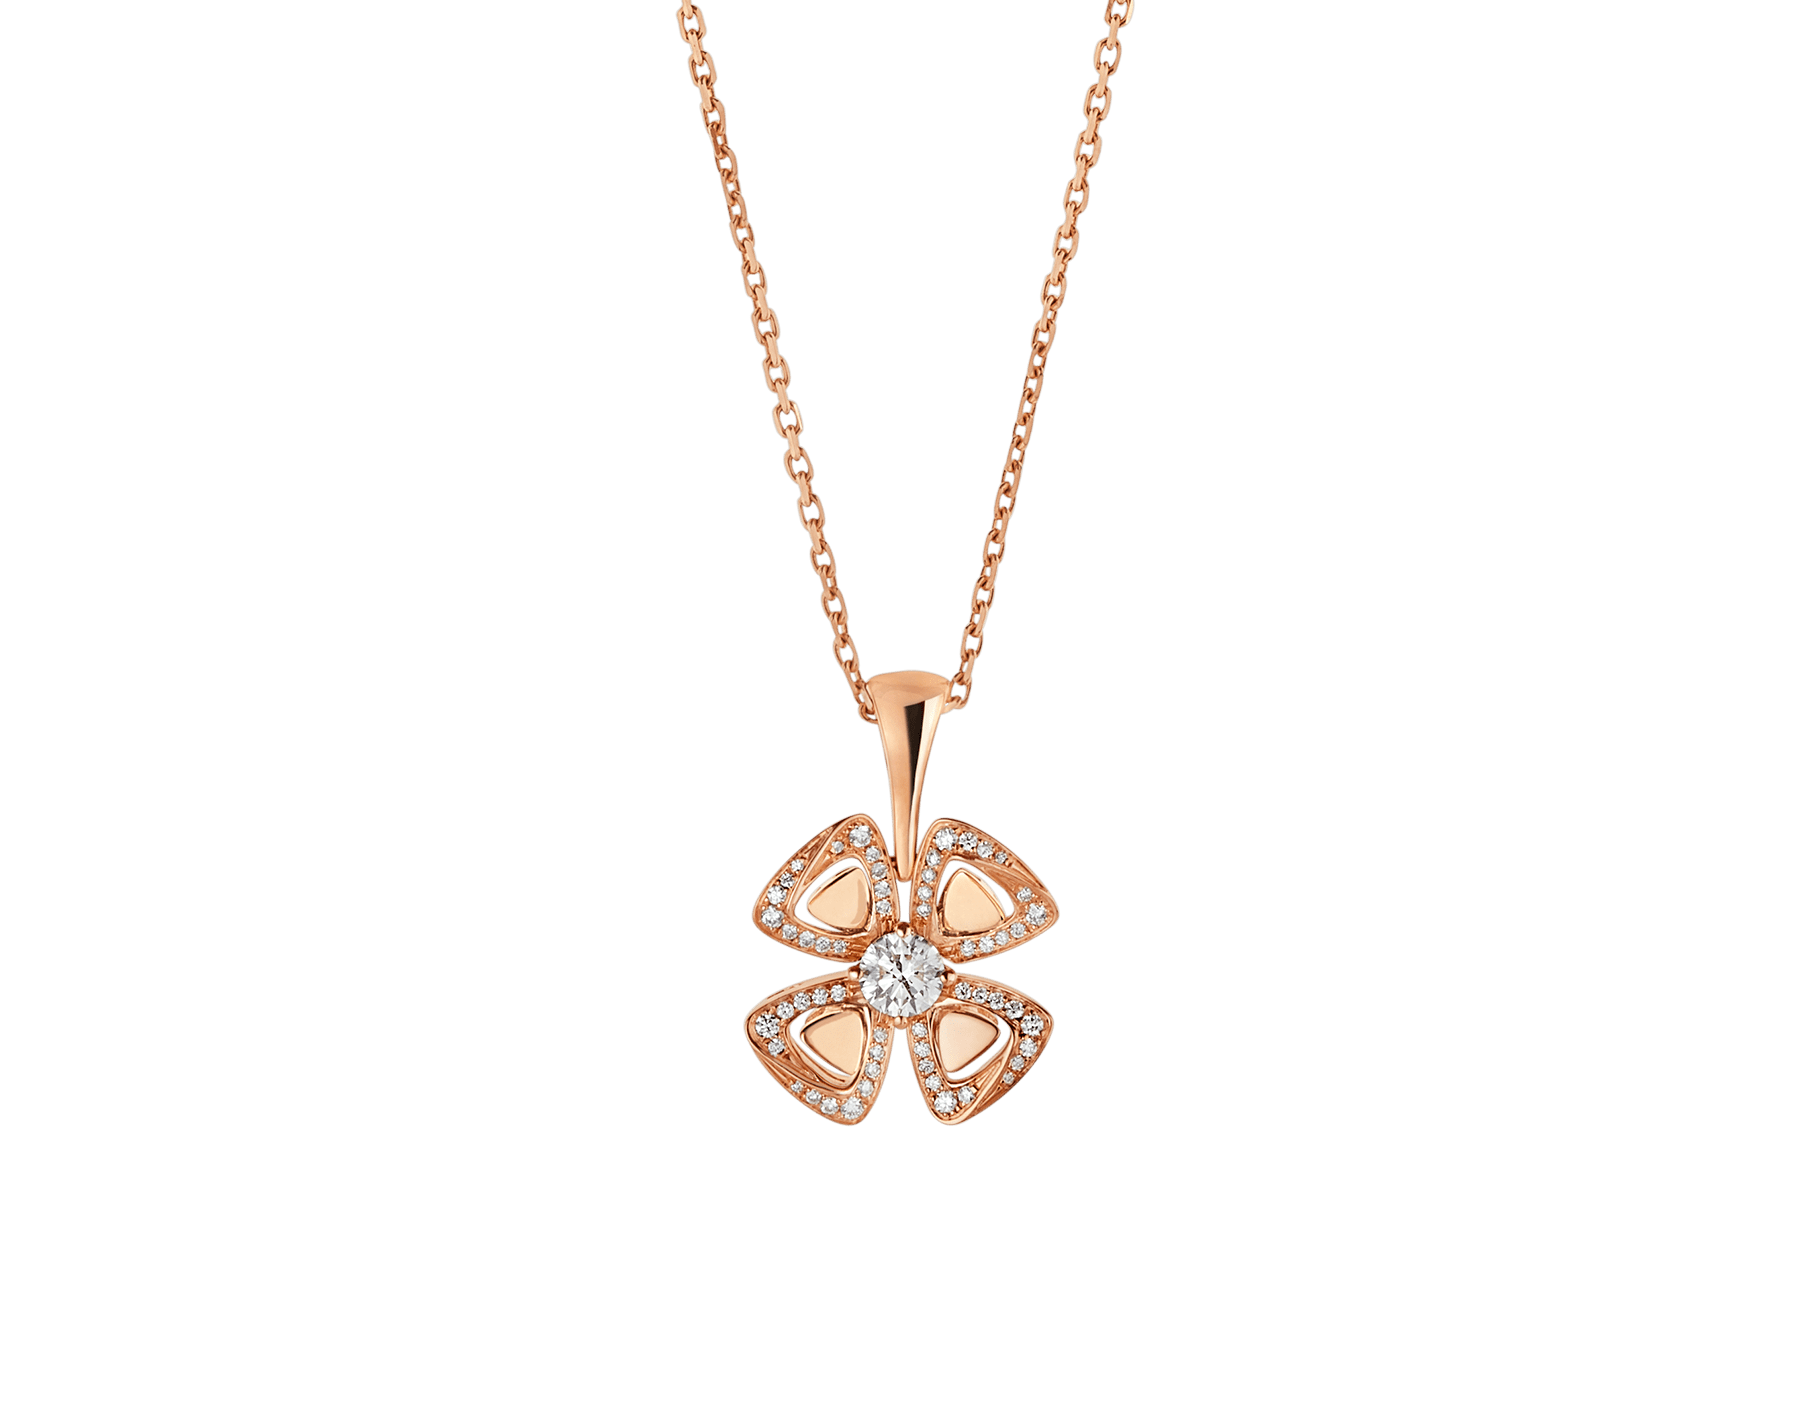 Fiorever 18 kt rose gold necklace set with a central diamond (0.20 ct) and pavé diamonds (0.18 ct) 356223 image 1